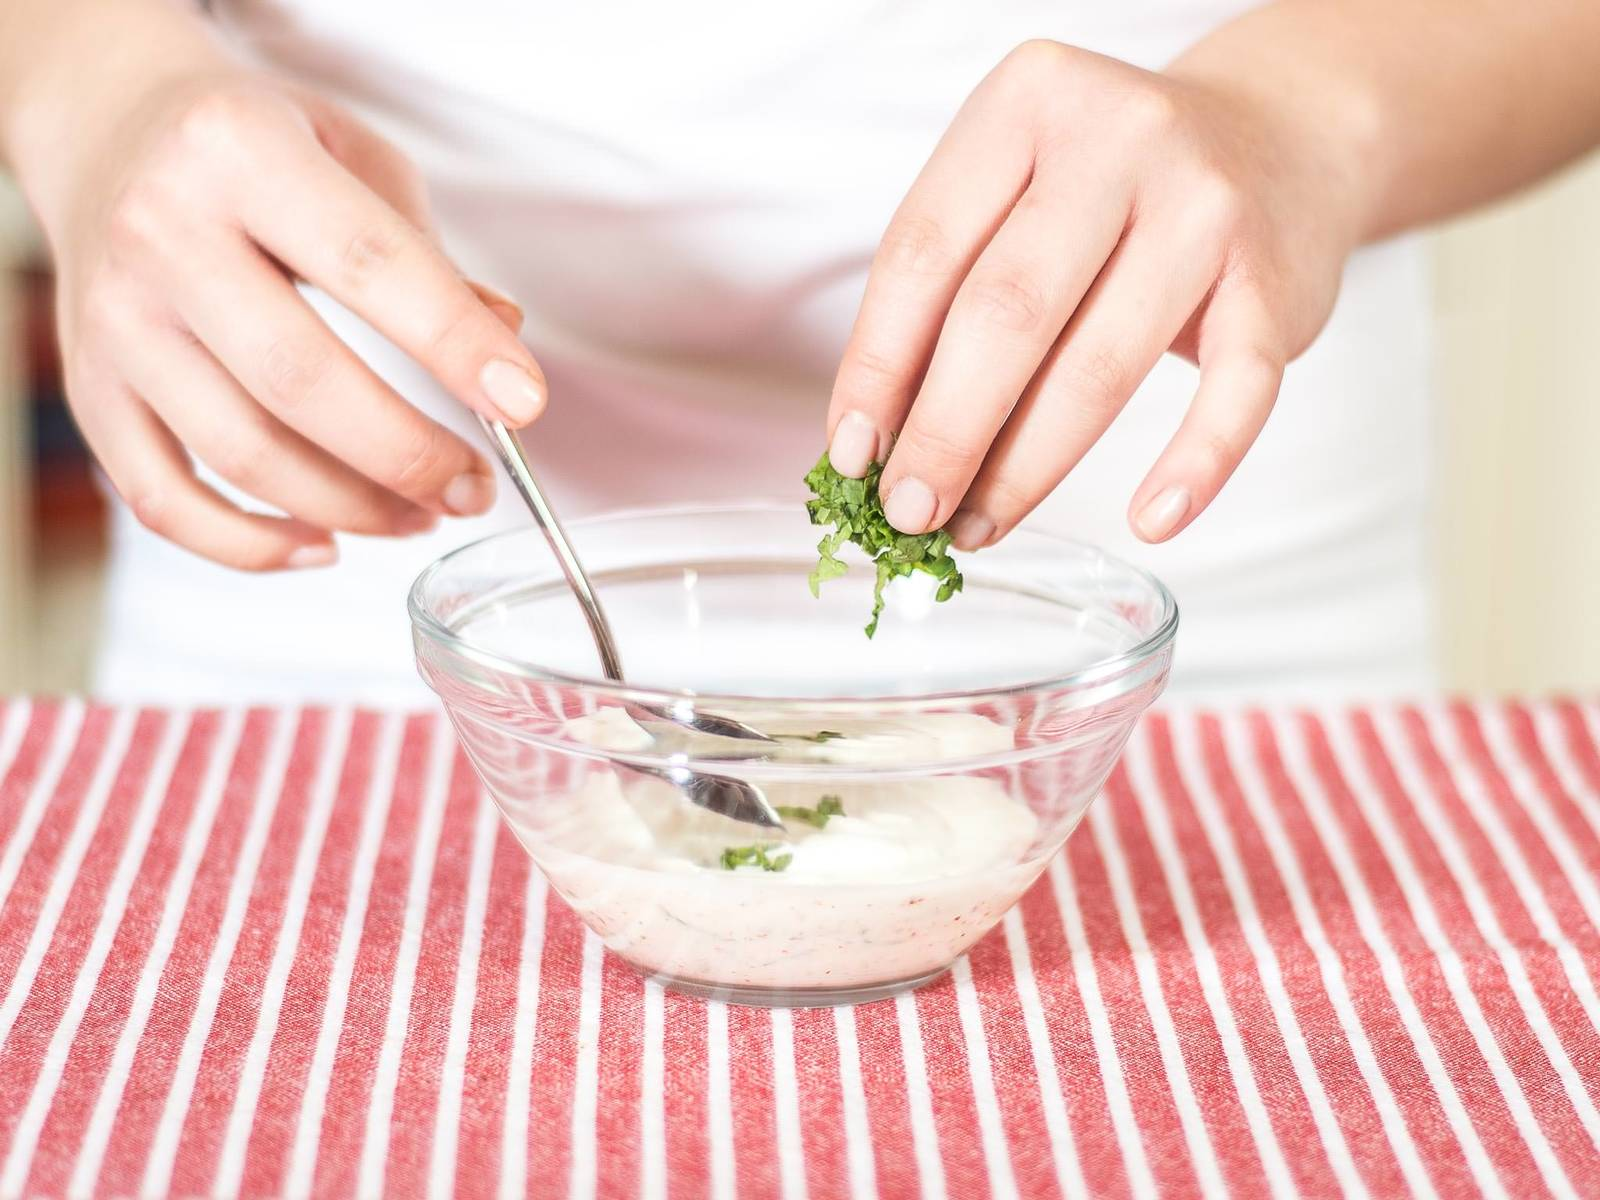 For the mint yogurt, mix natural yogurt with confectioner's sugar and the lime juice. Cut the mint leaves into thin strips and fold into the yogurt.